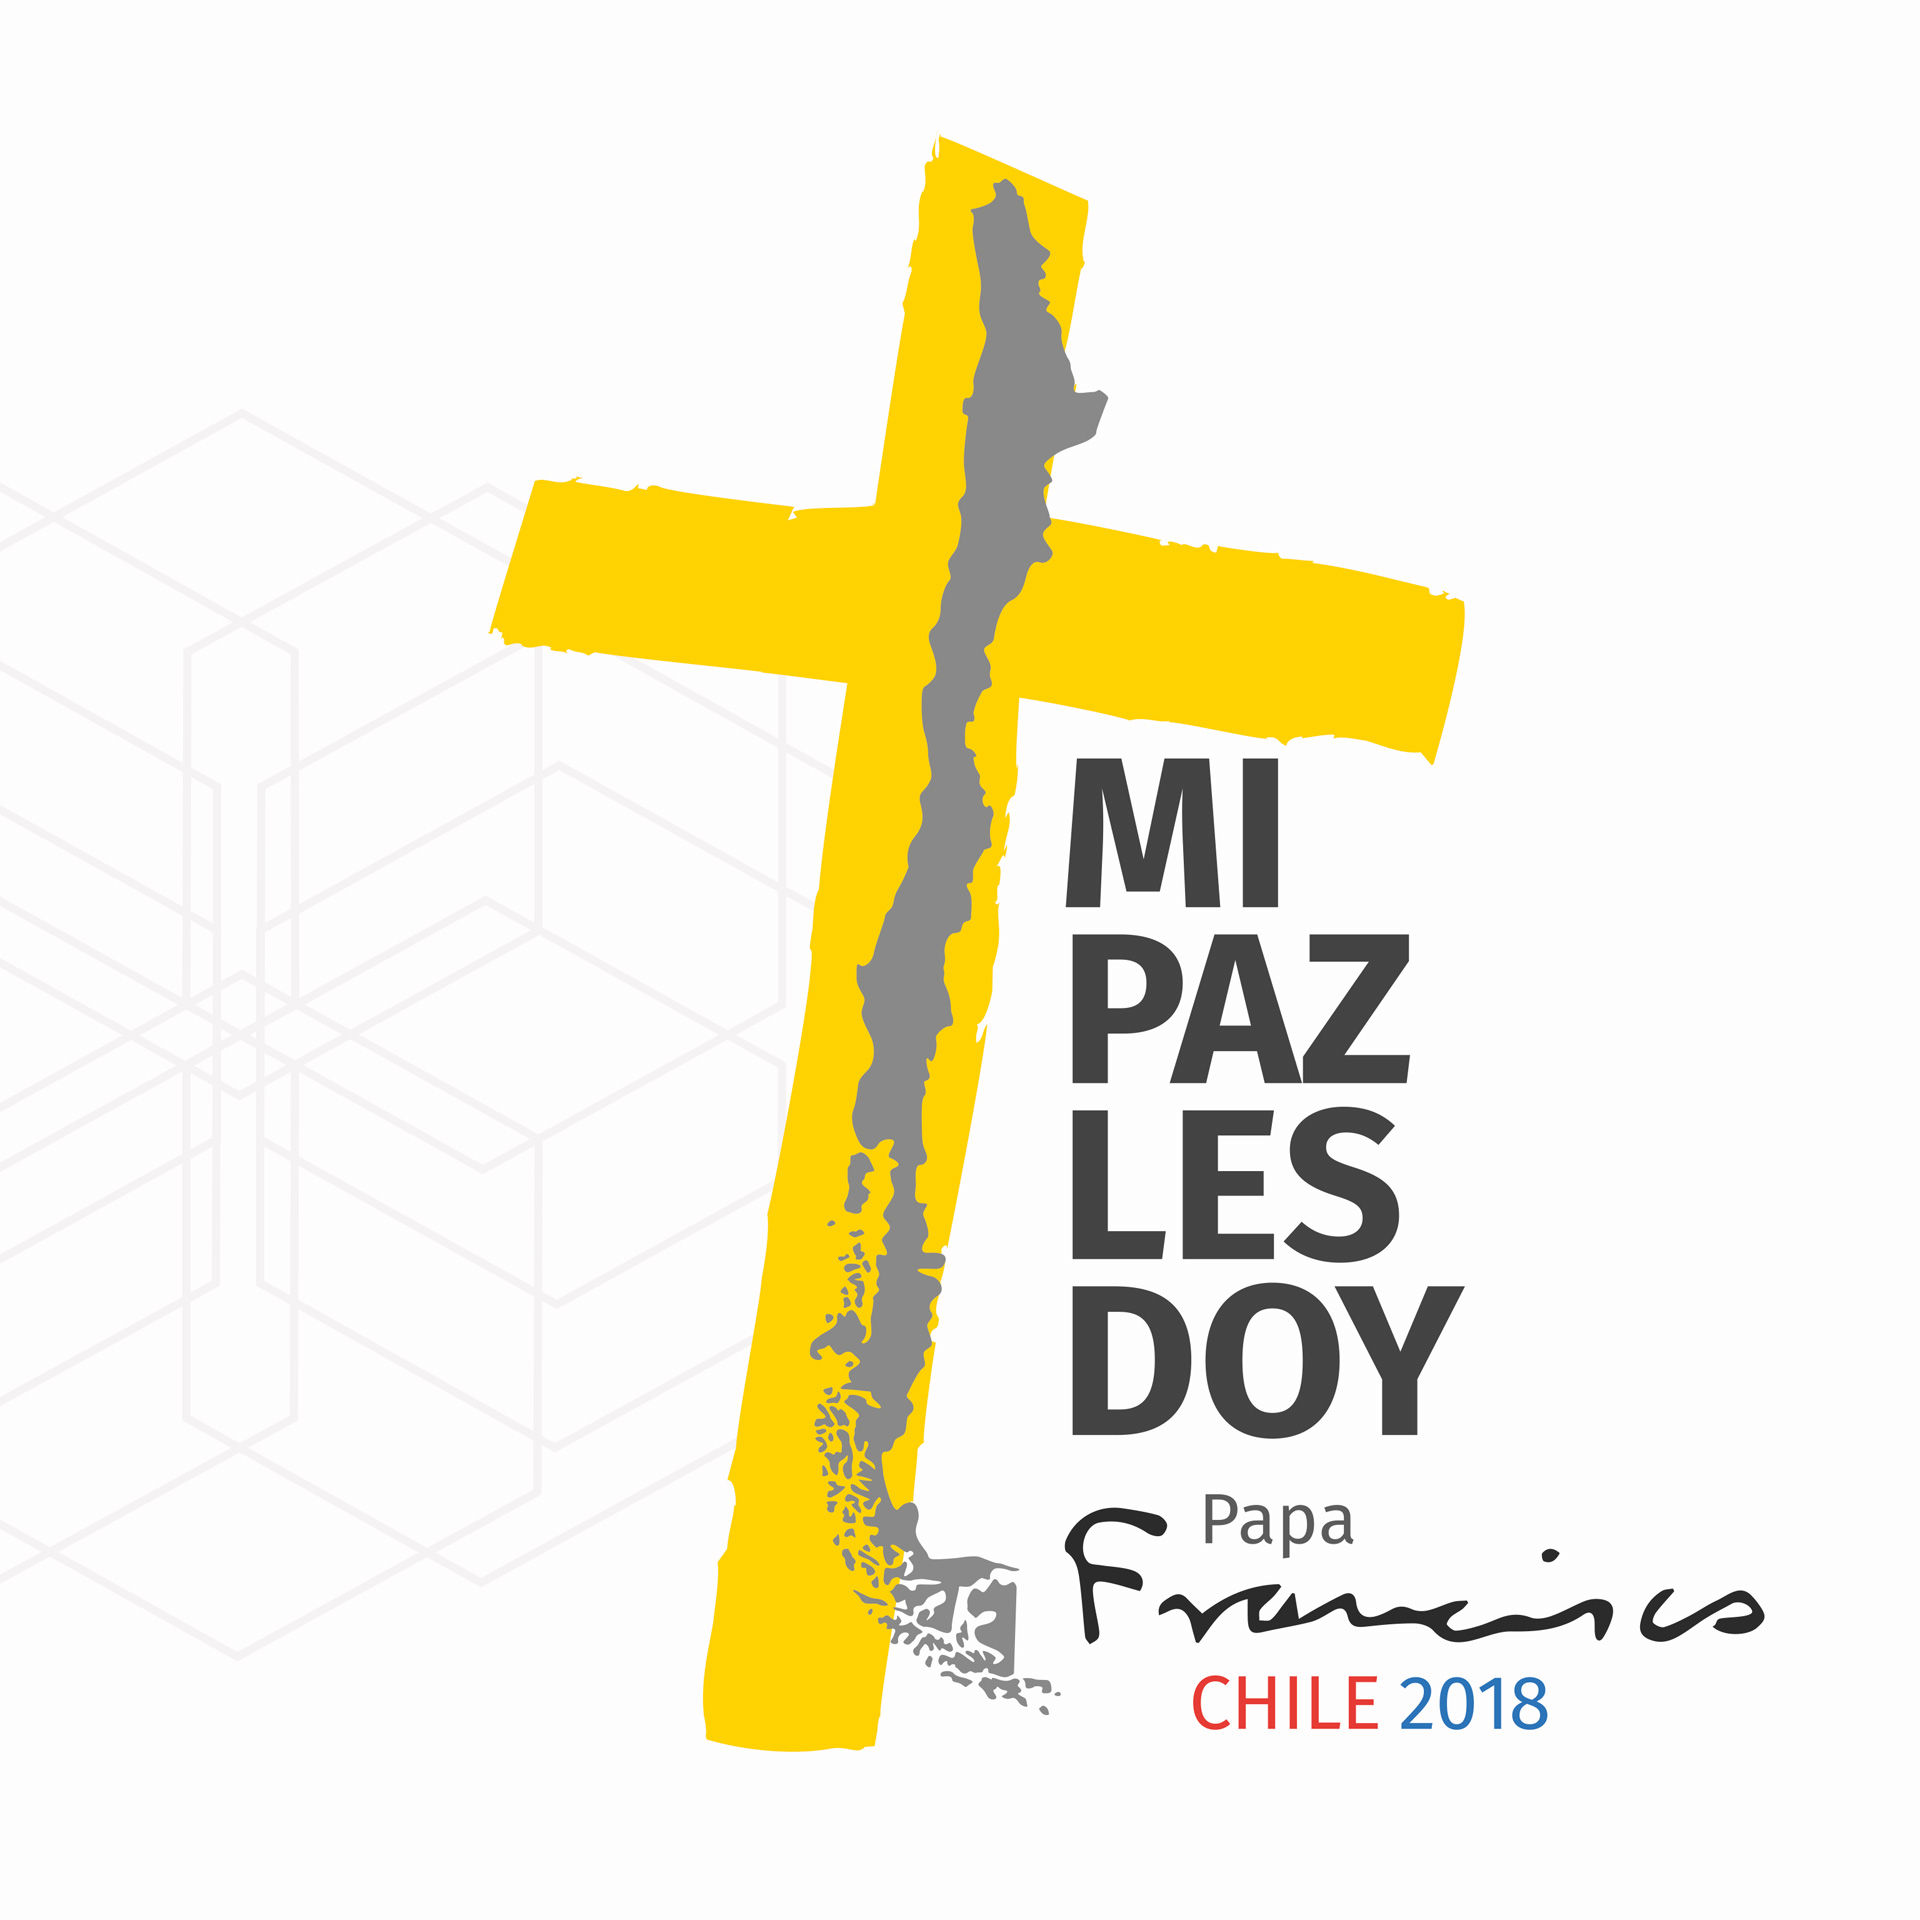 Imagen corporativa visita Papa Francisco en Chile